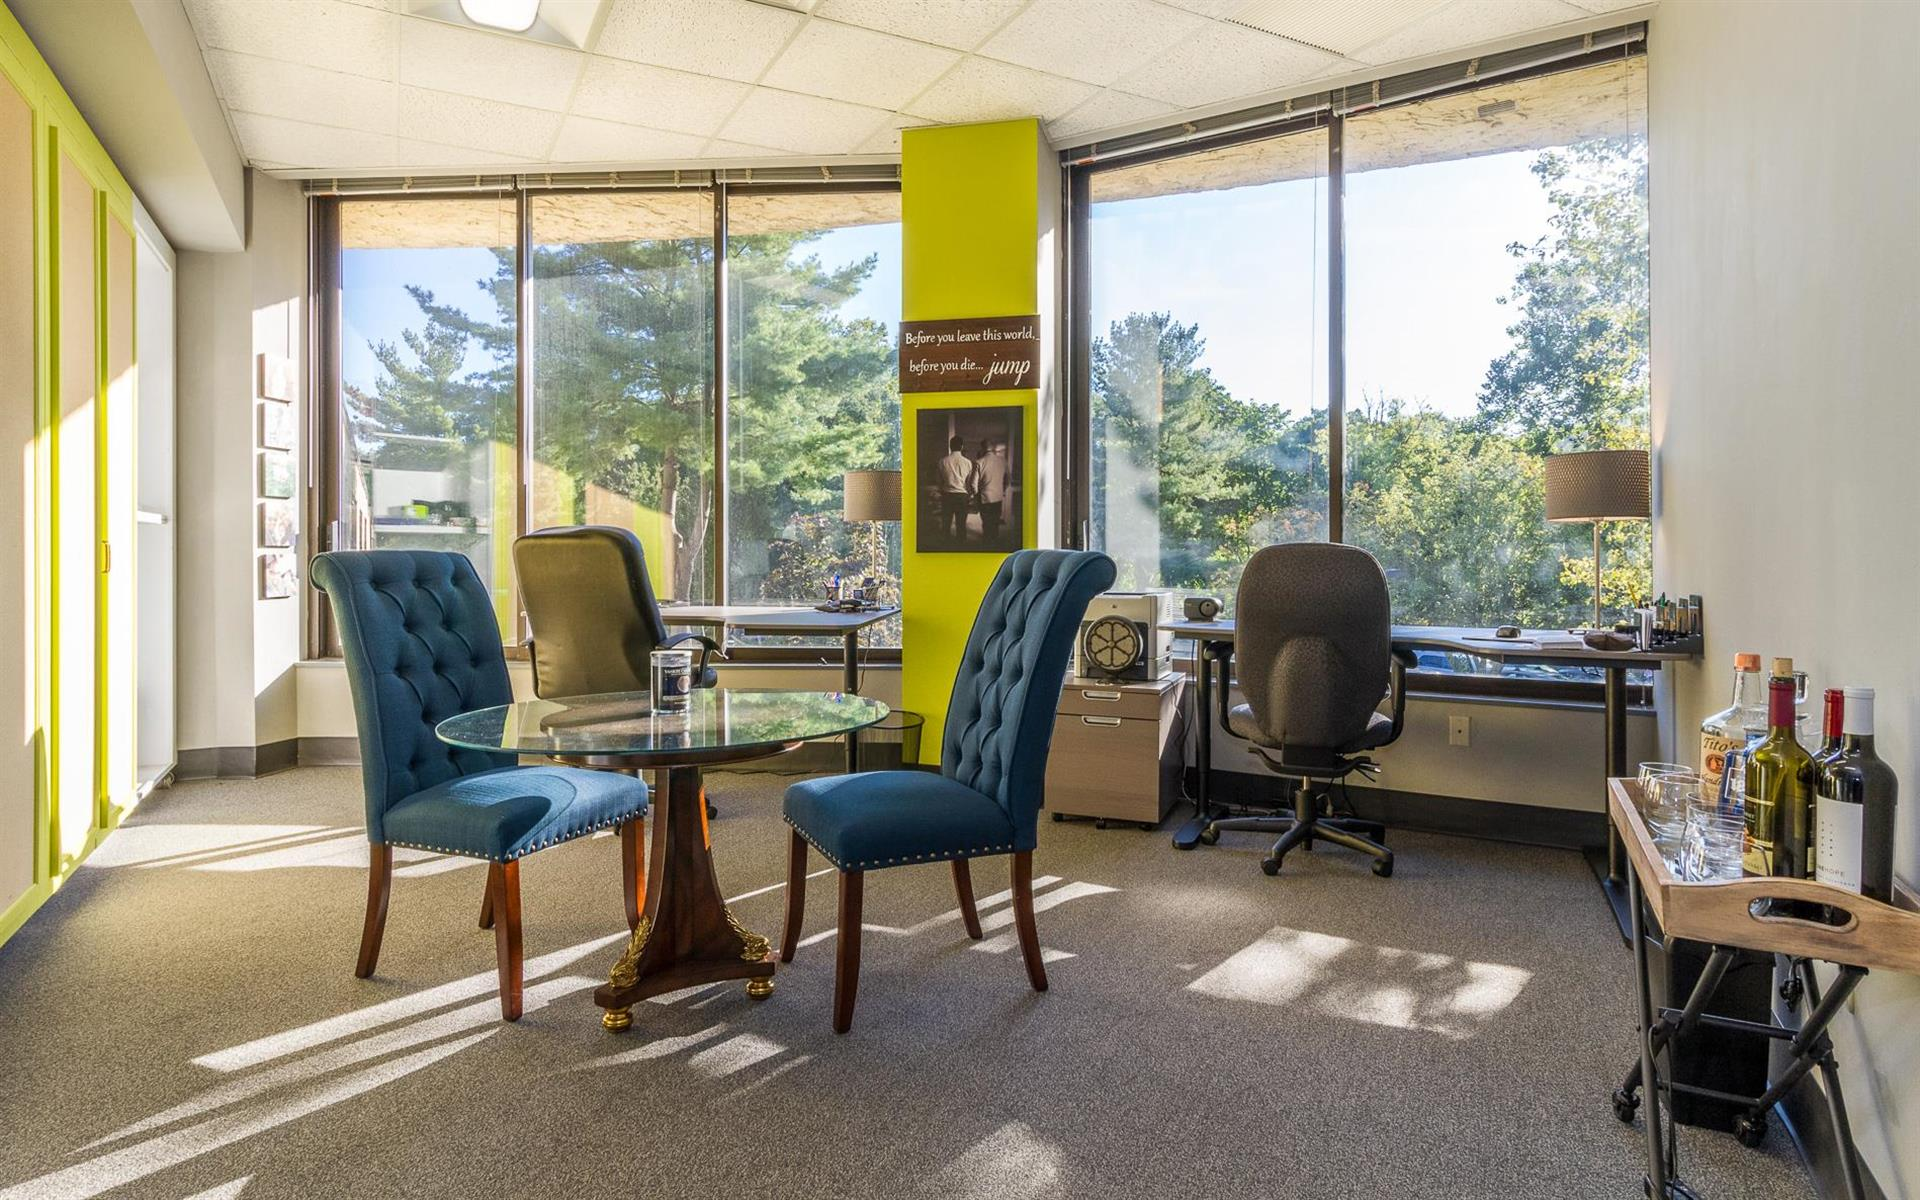 Velociity Workspace - Large Sunny Private Office